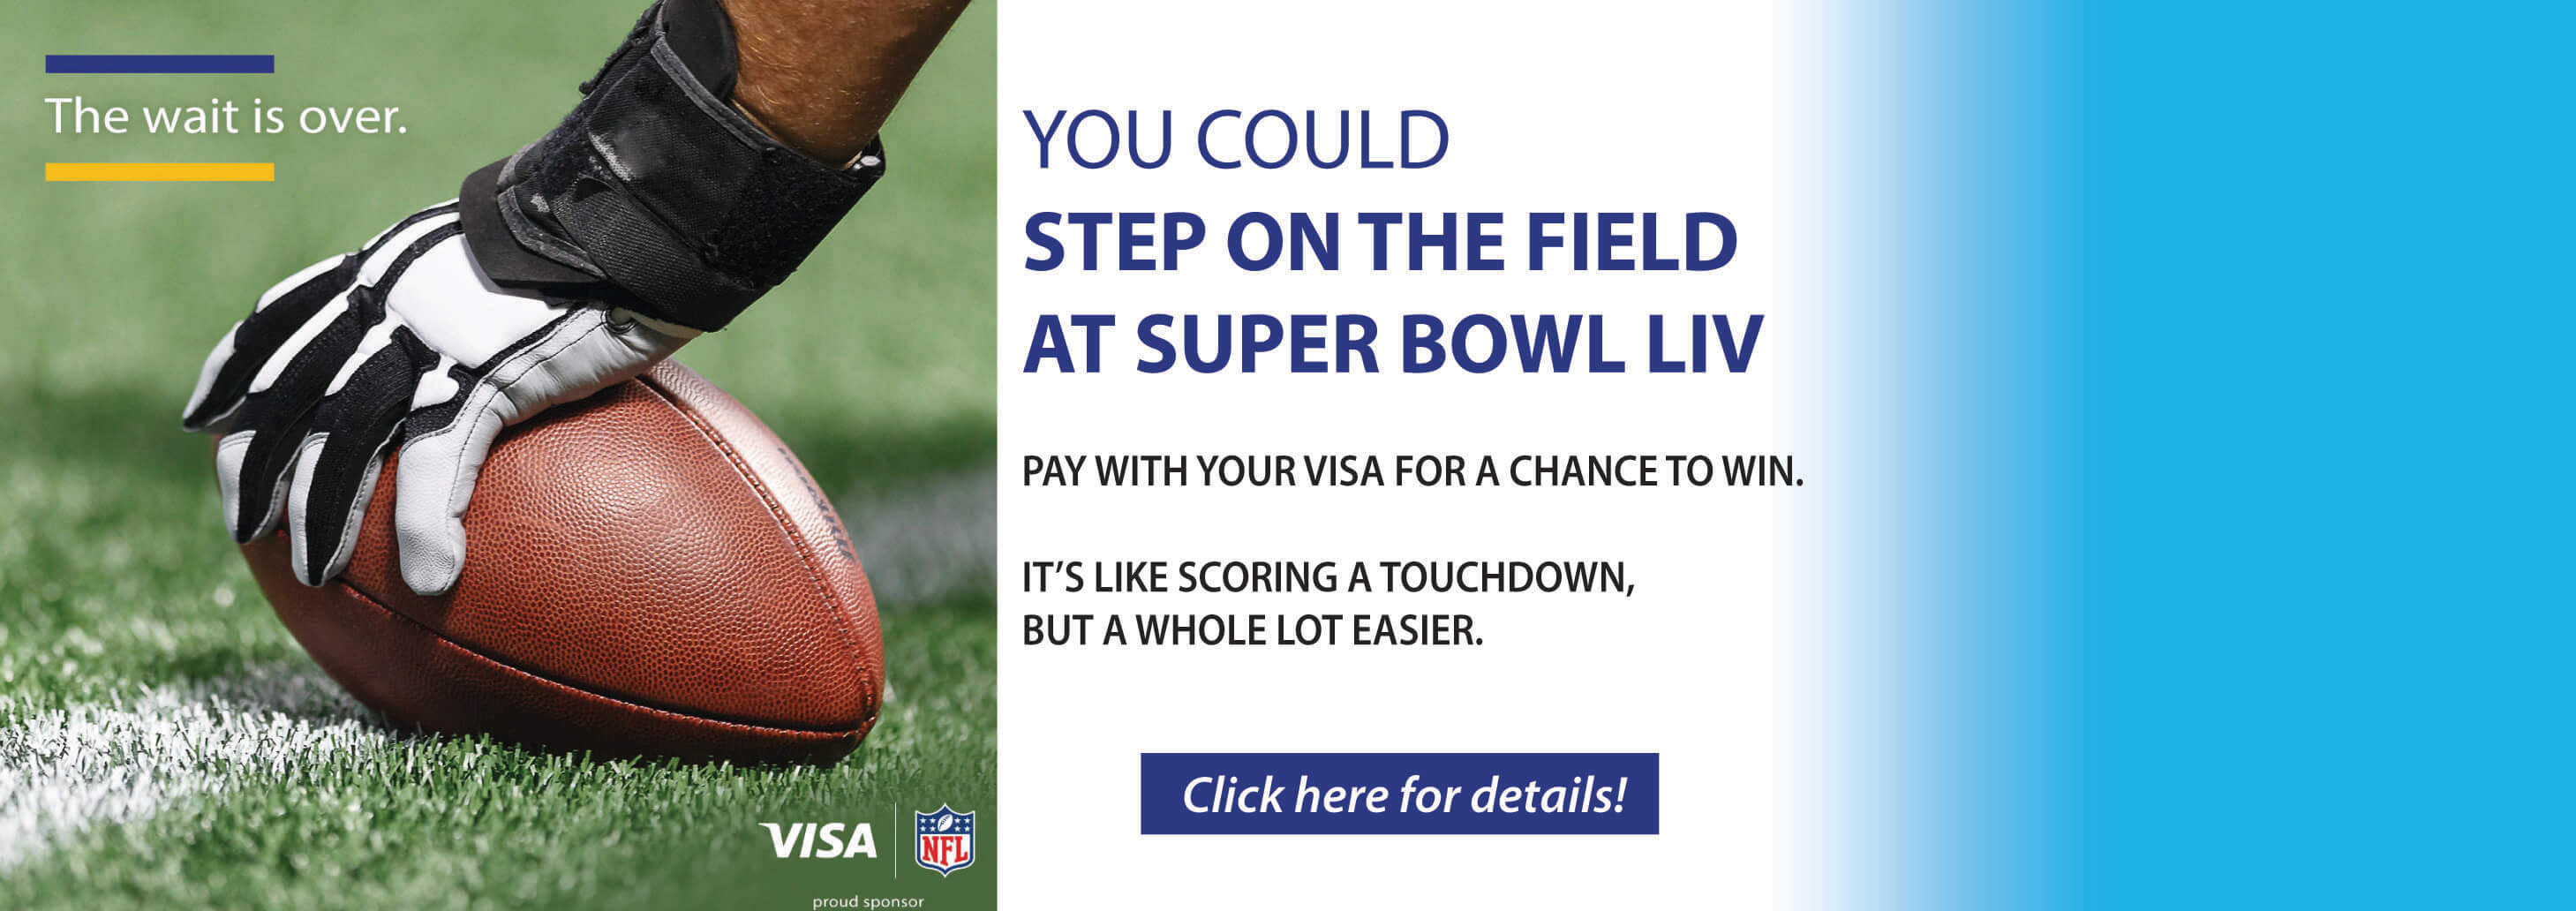 You could step on the field at Super Bowl LIV. Pay with your VISA for a chance to win! Click for details.